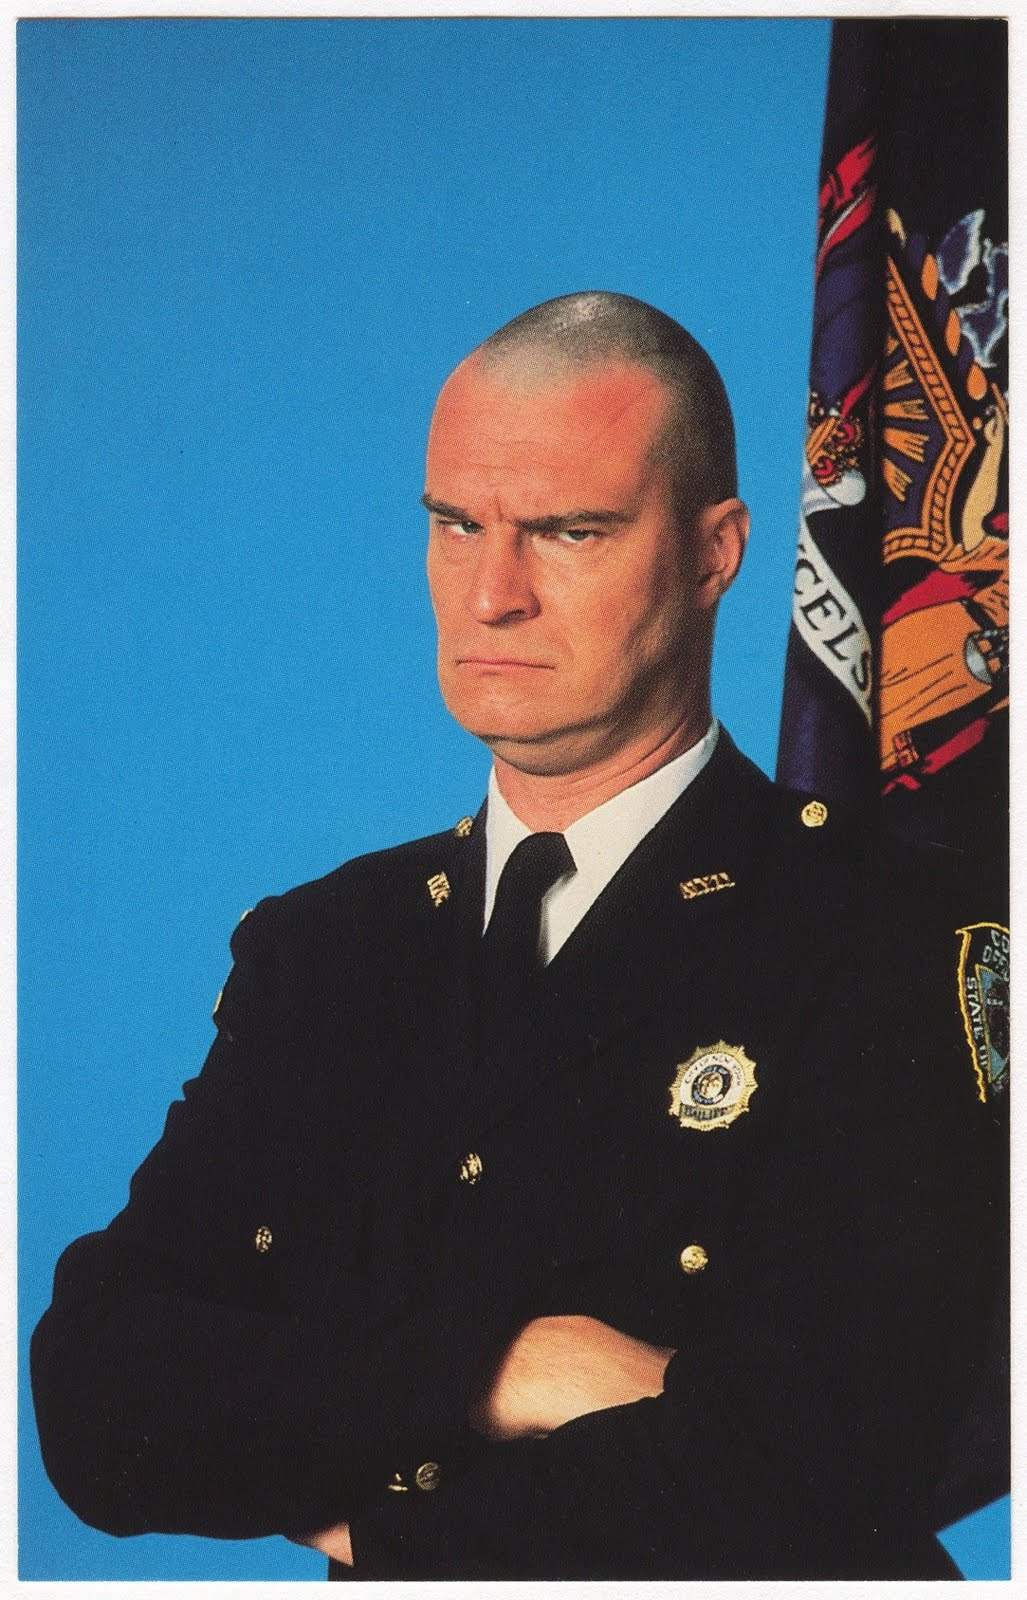 richard moll diedrichard moll actor, ричард молл, richard moll uwo, richard moll napalm death, richard moll died, richard moll imdb, richard moll net worth, richard moll movies and tv shows, richard moll two face, richard moll two face voice, richard moll public ivies, richard moll obituary, richard moll wife, richard moll images, richard moll death